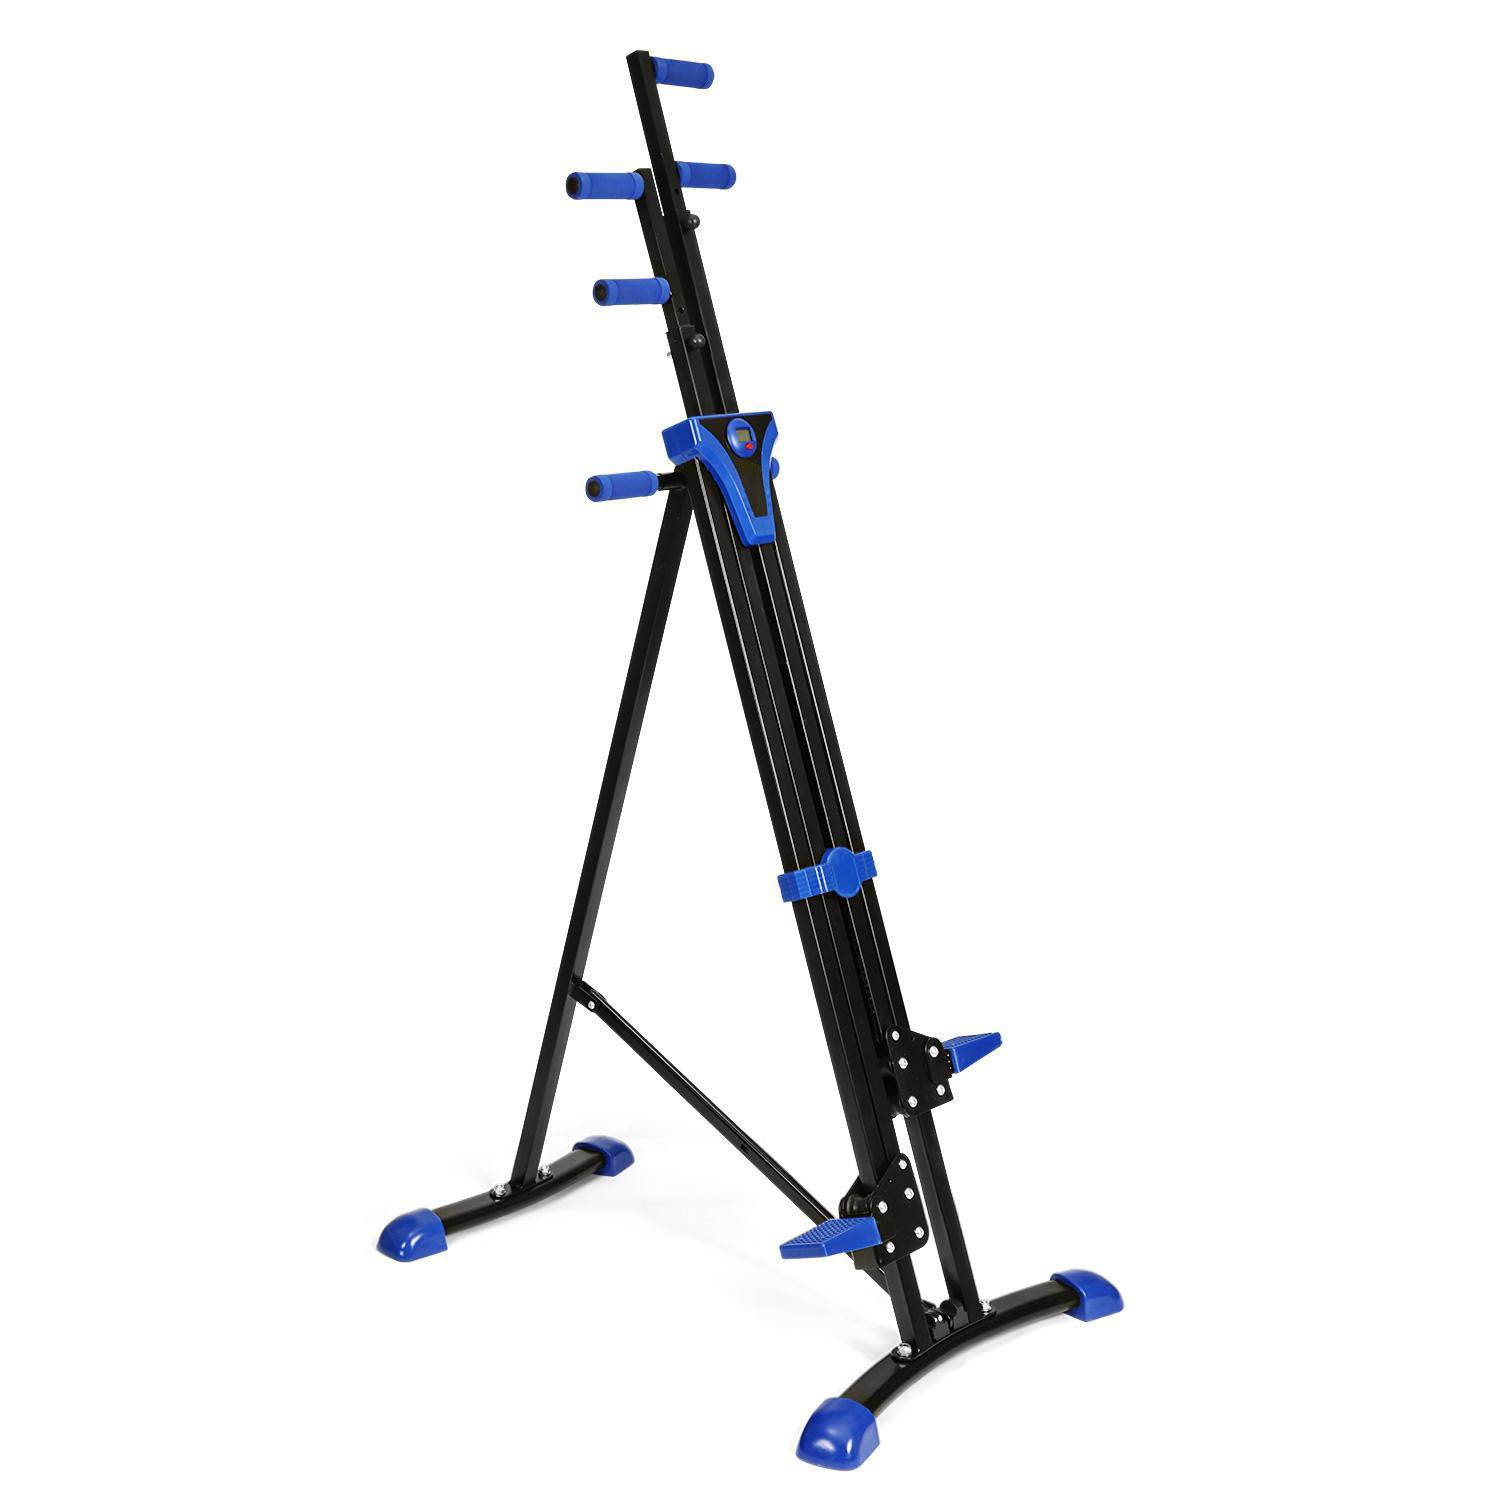 Vertical Mountain Climber Exercise Machine, 2 In 1 Foldable Vertical Stair Step Climber Stepper Exercise Fitness Climbing Machine by Evokem (Image #8)